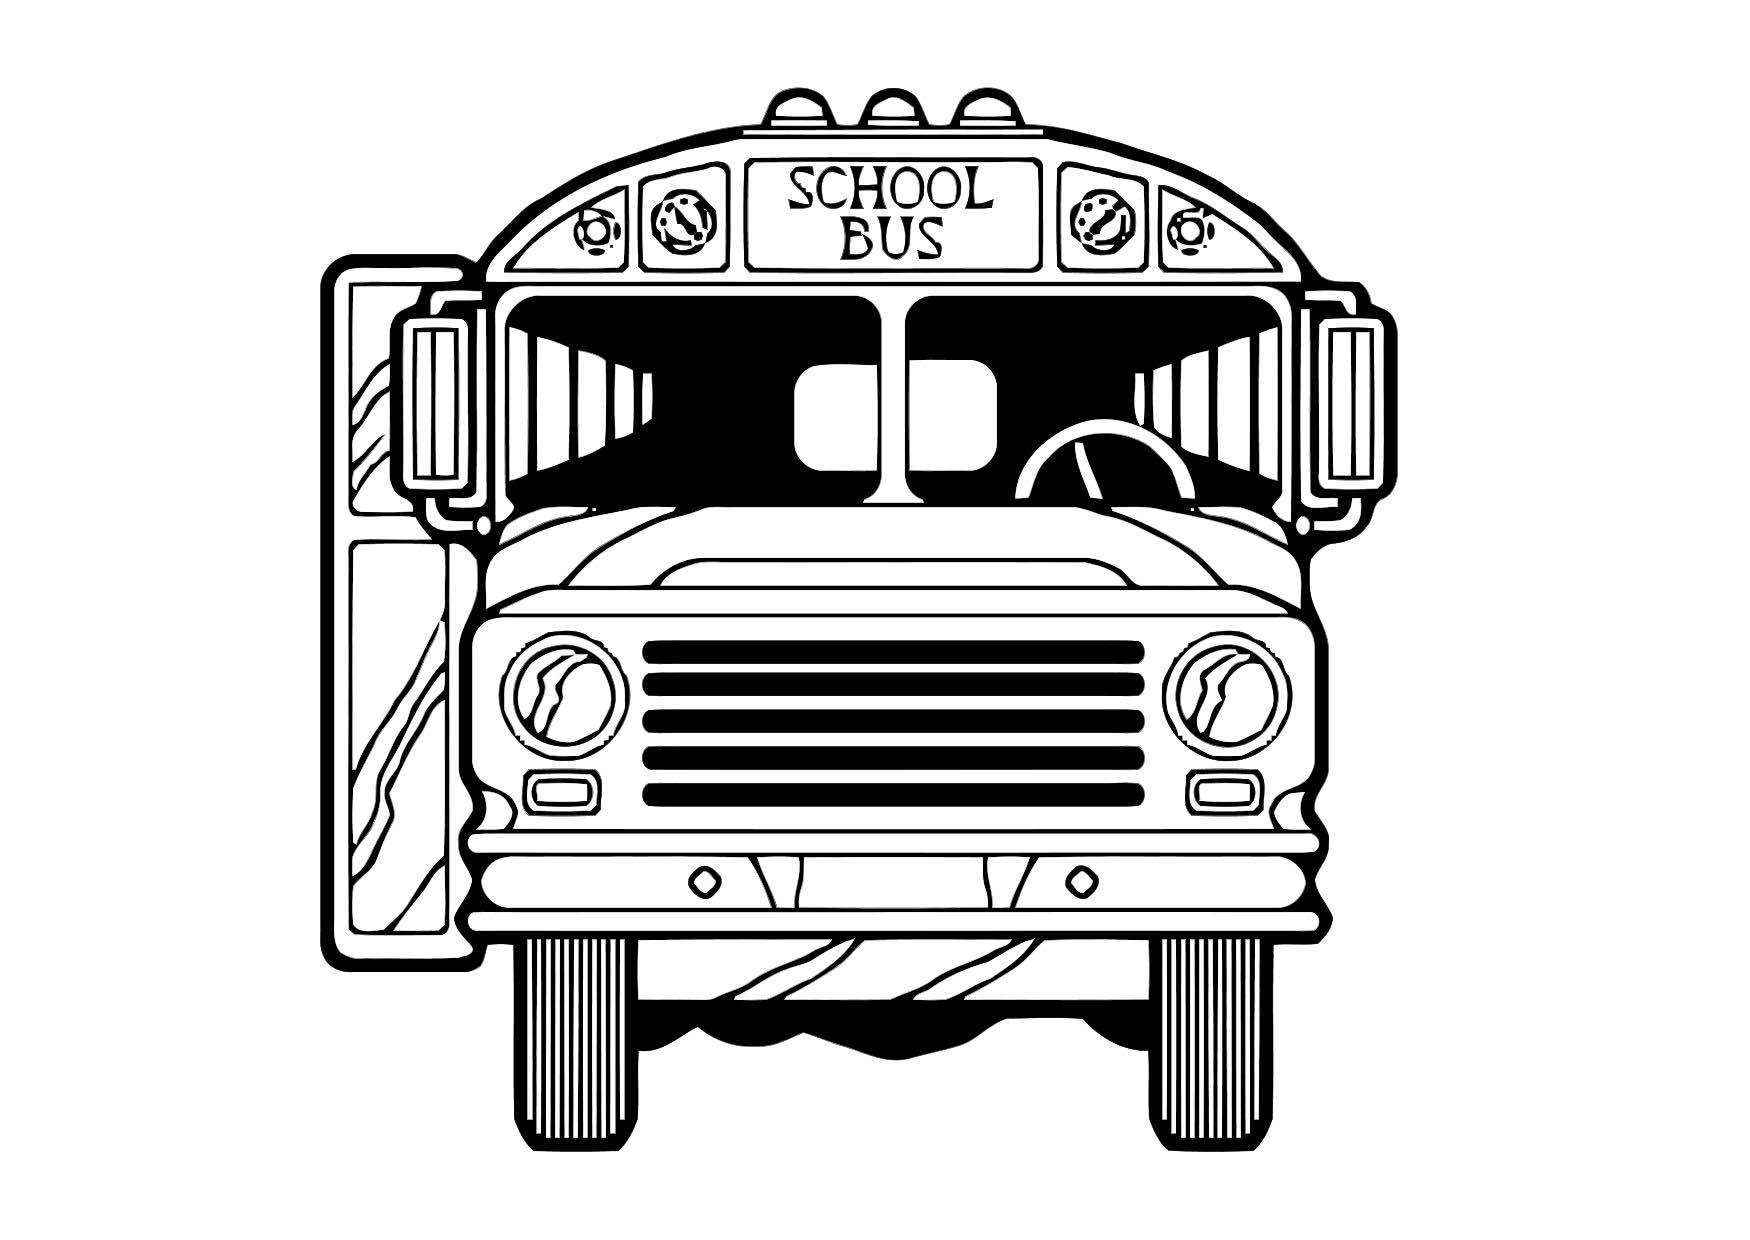 coloring sheet school bus coloring page free printable school bus coloring pages for kids page sheet coloring school bus coloring